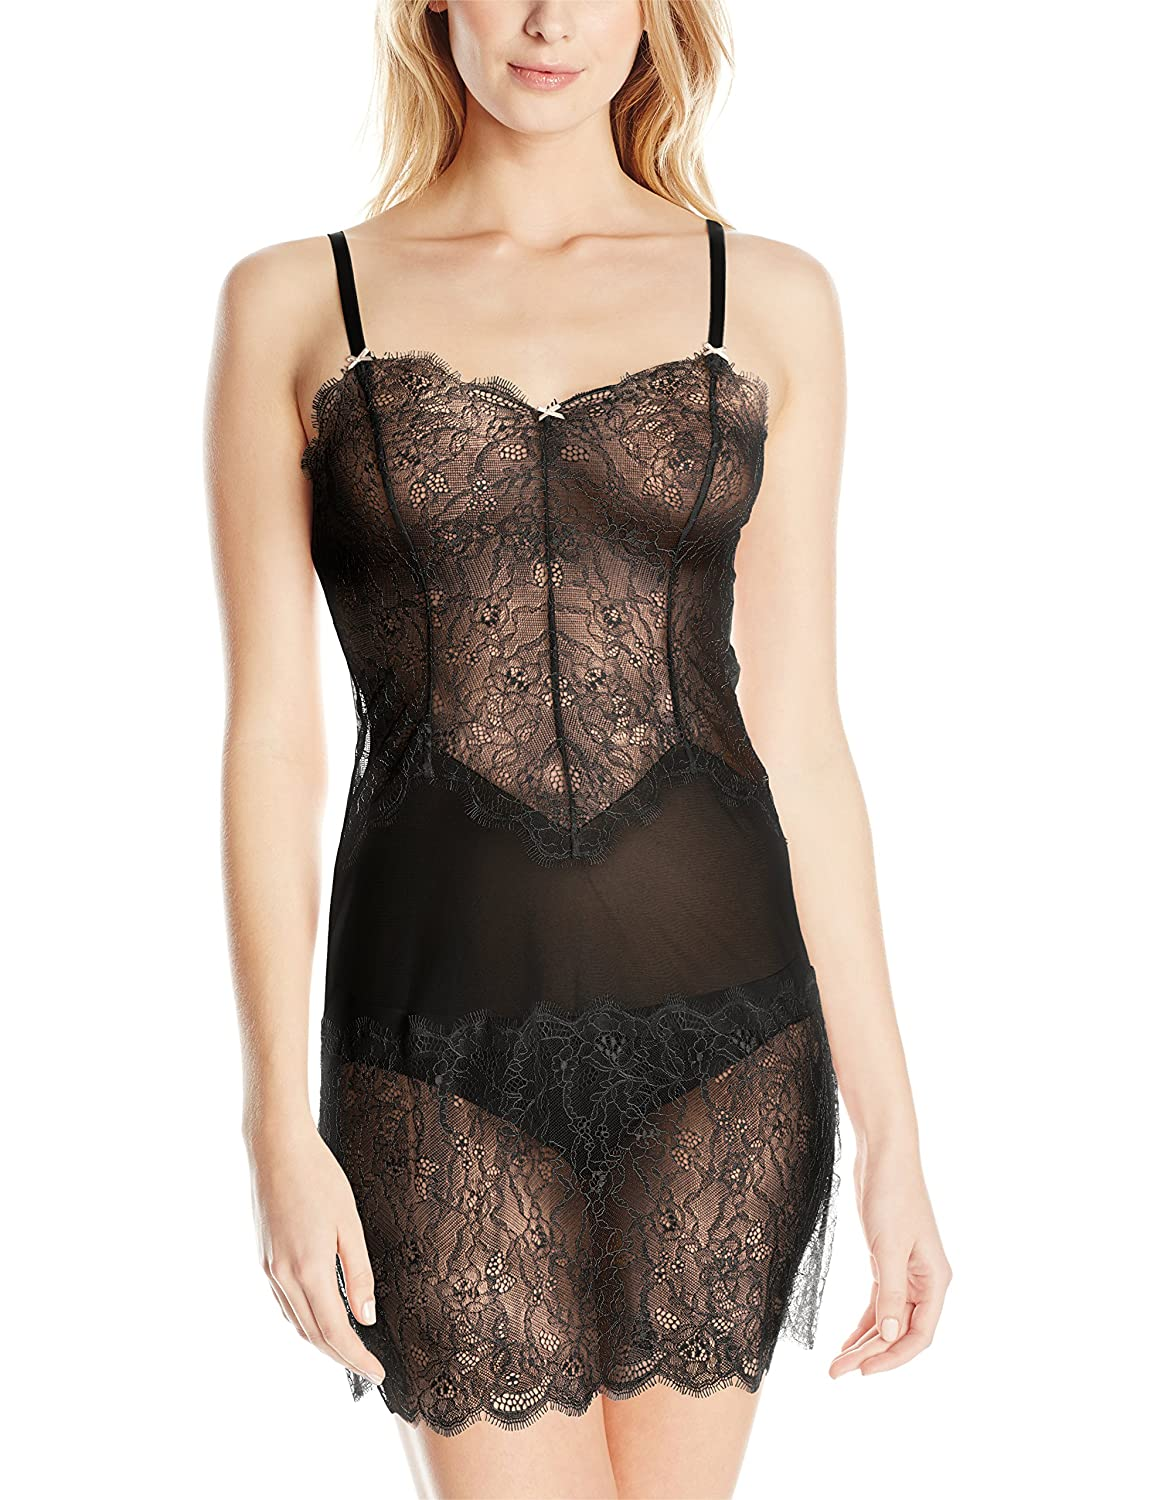 B.tempt'd B.Sultry Chemise in Night/Peach Beige (WB914261) jetzt bestellen